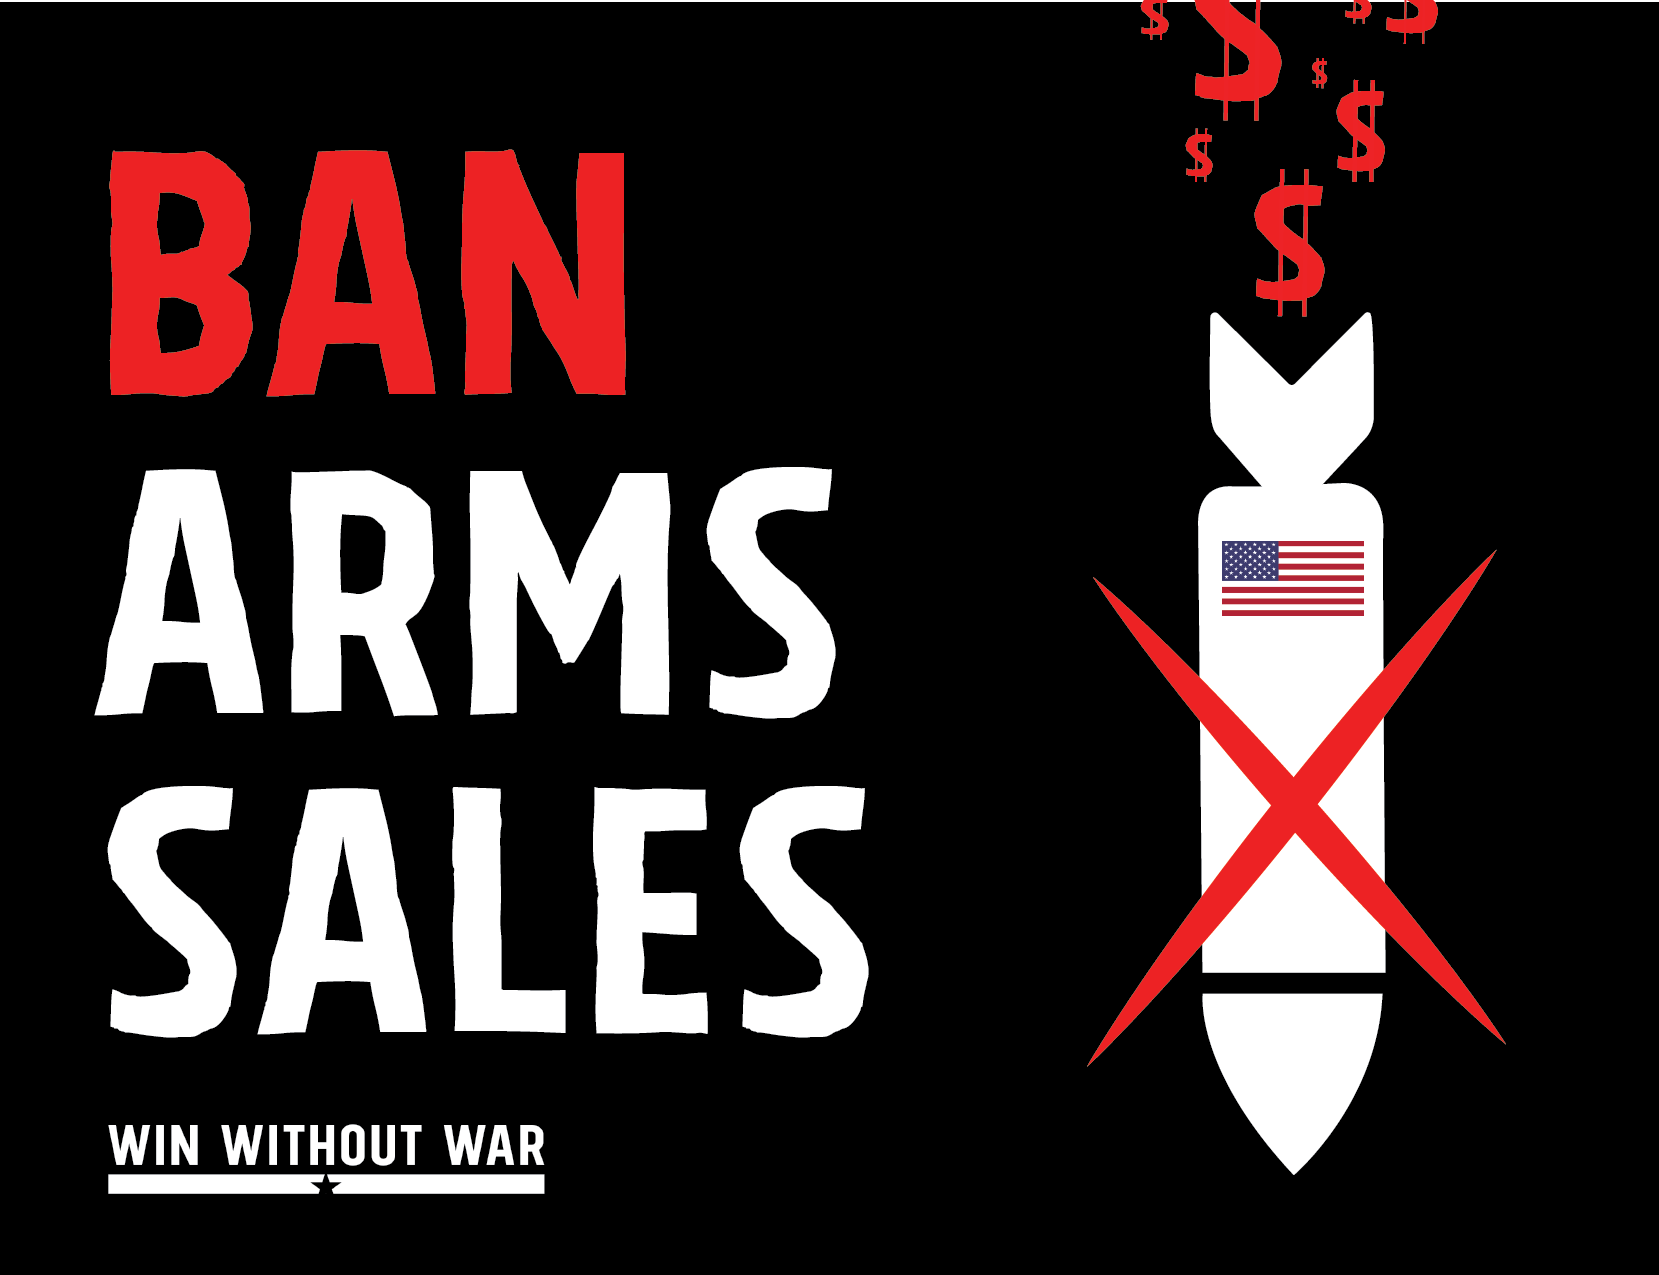 Dear Congress: Ban Arms Sales Now!